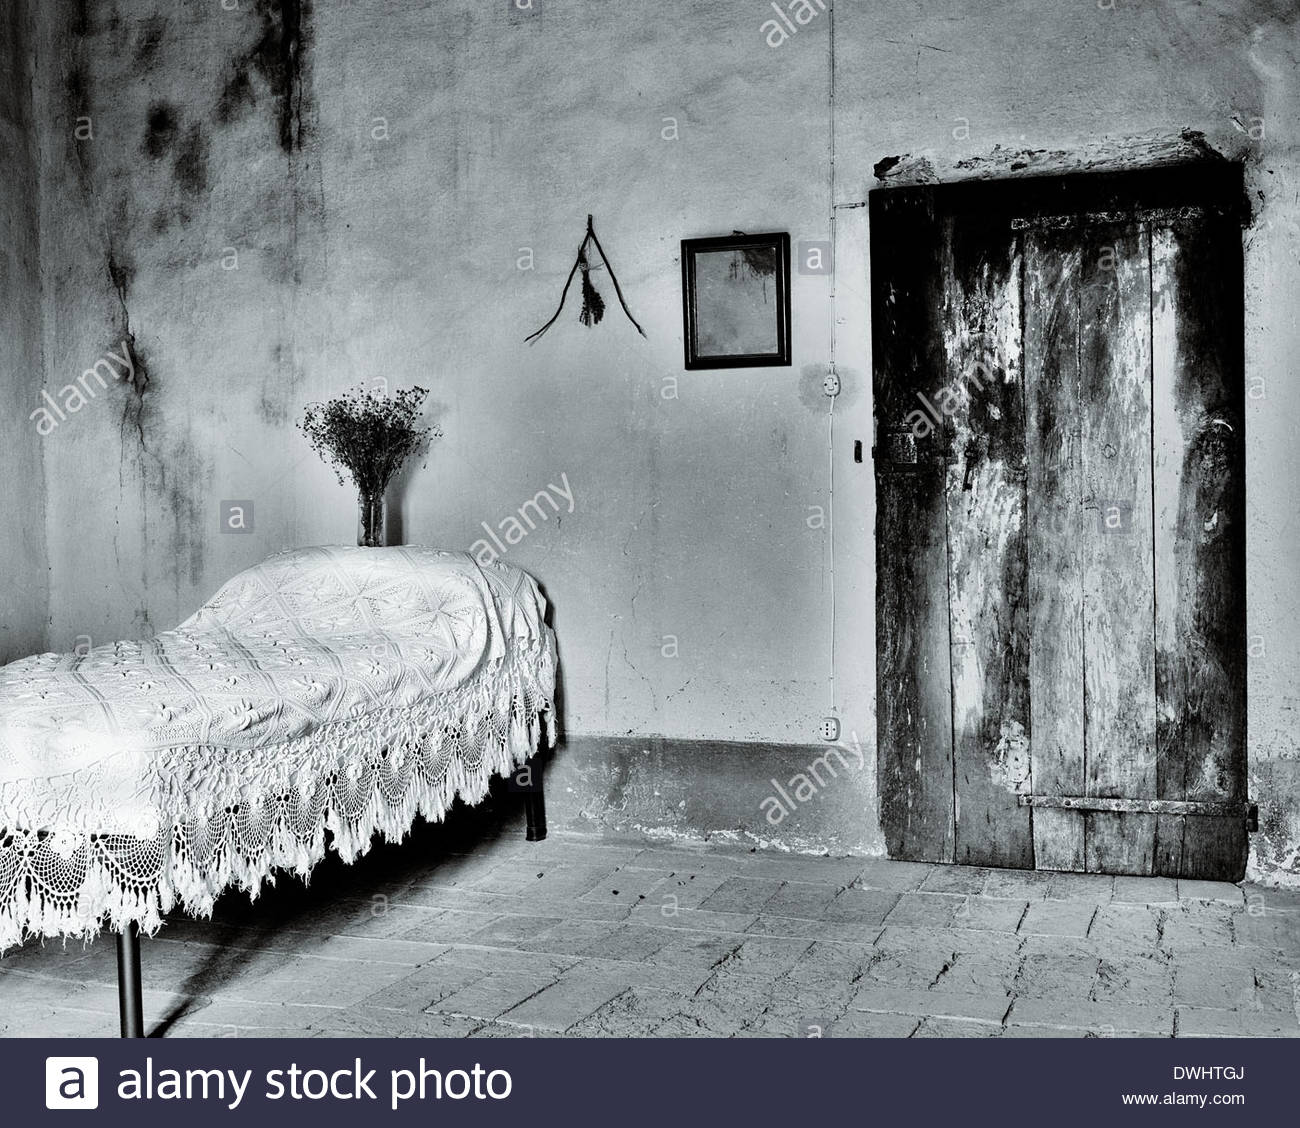 A vase of flowers on the pillow of a bed, on the wall hangs a water diviner,  in an old house in Tuscany, Italy. - Stock Image